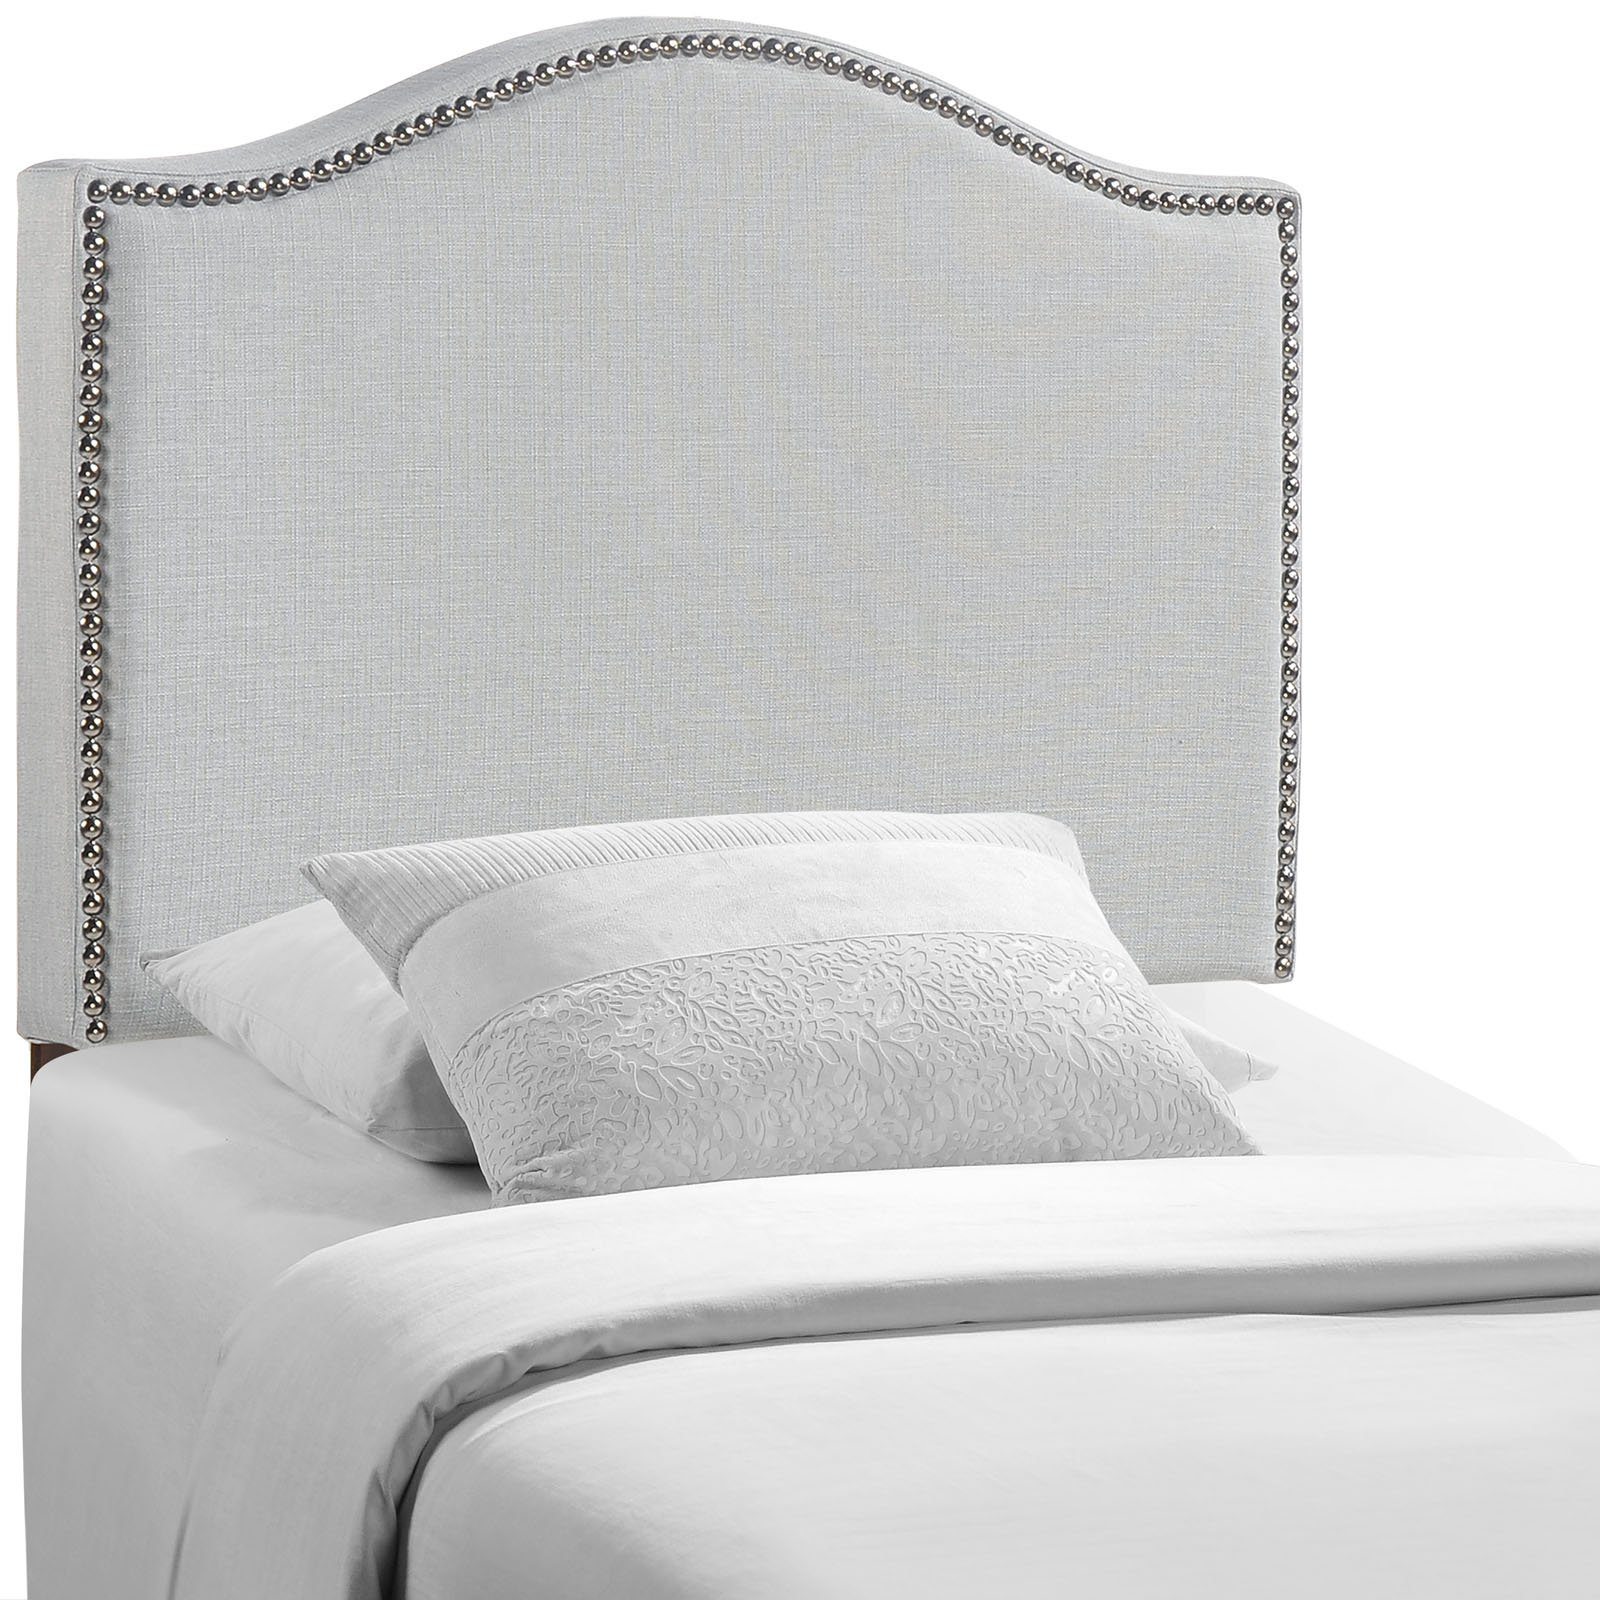 Modway Curl Upholstered Linen Headboard Twin Size With Nailhead Trim and Curved Shape In Sky Gray